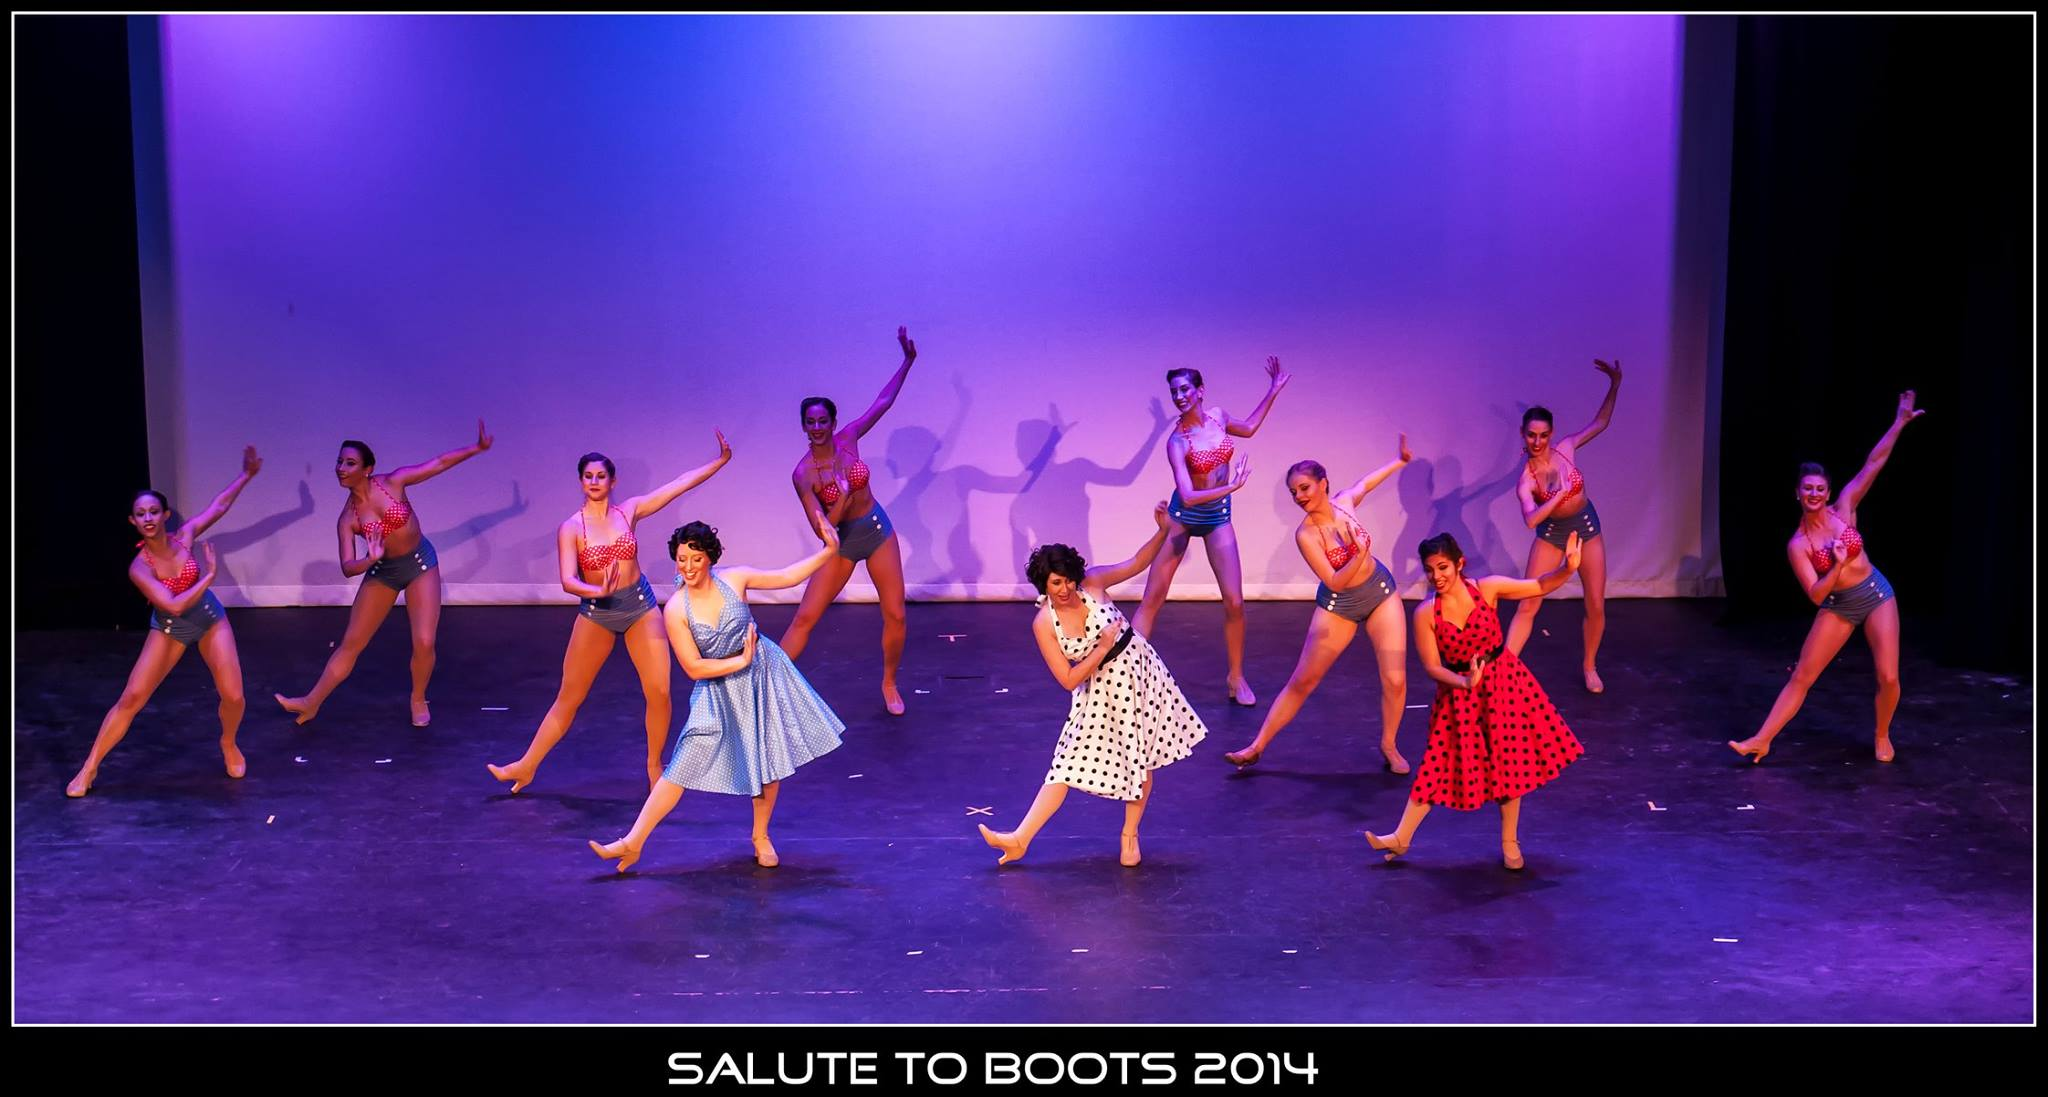 Salute to Boots 2014